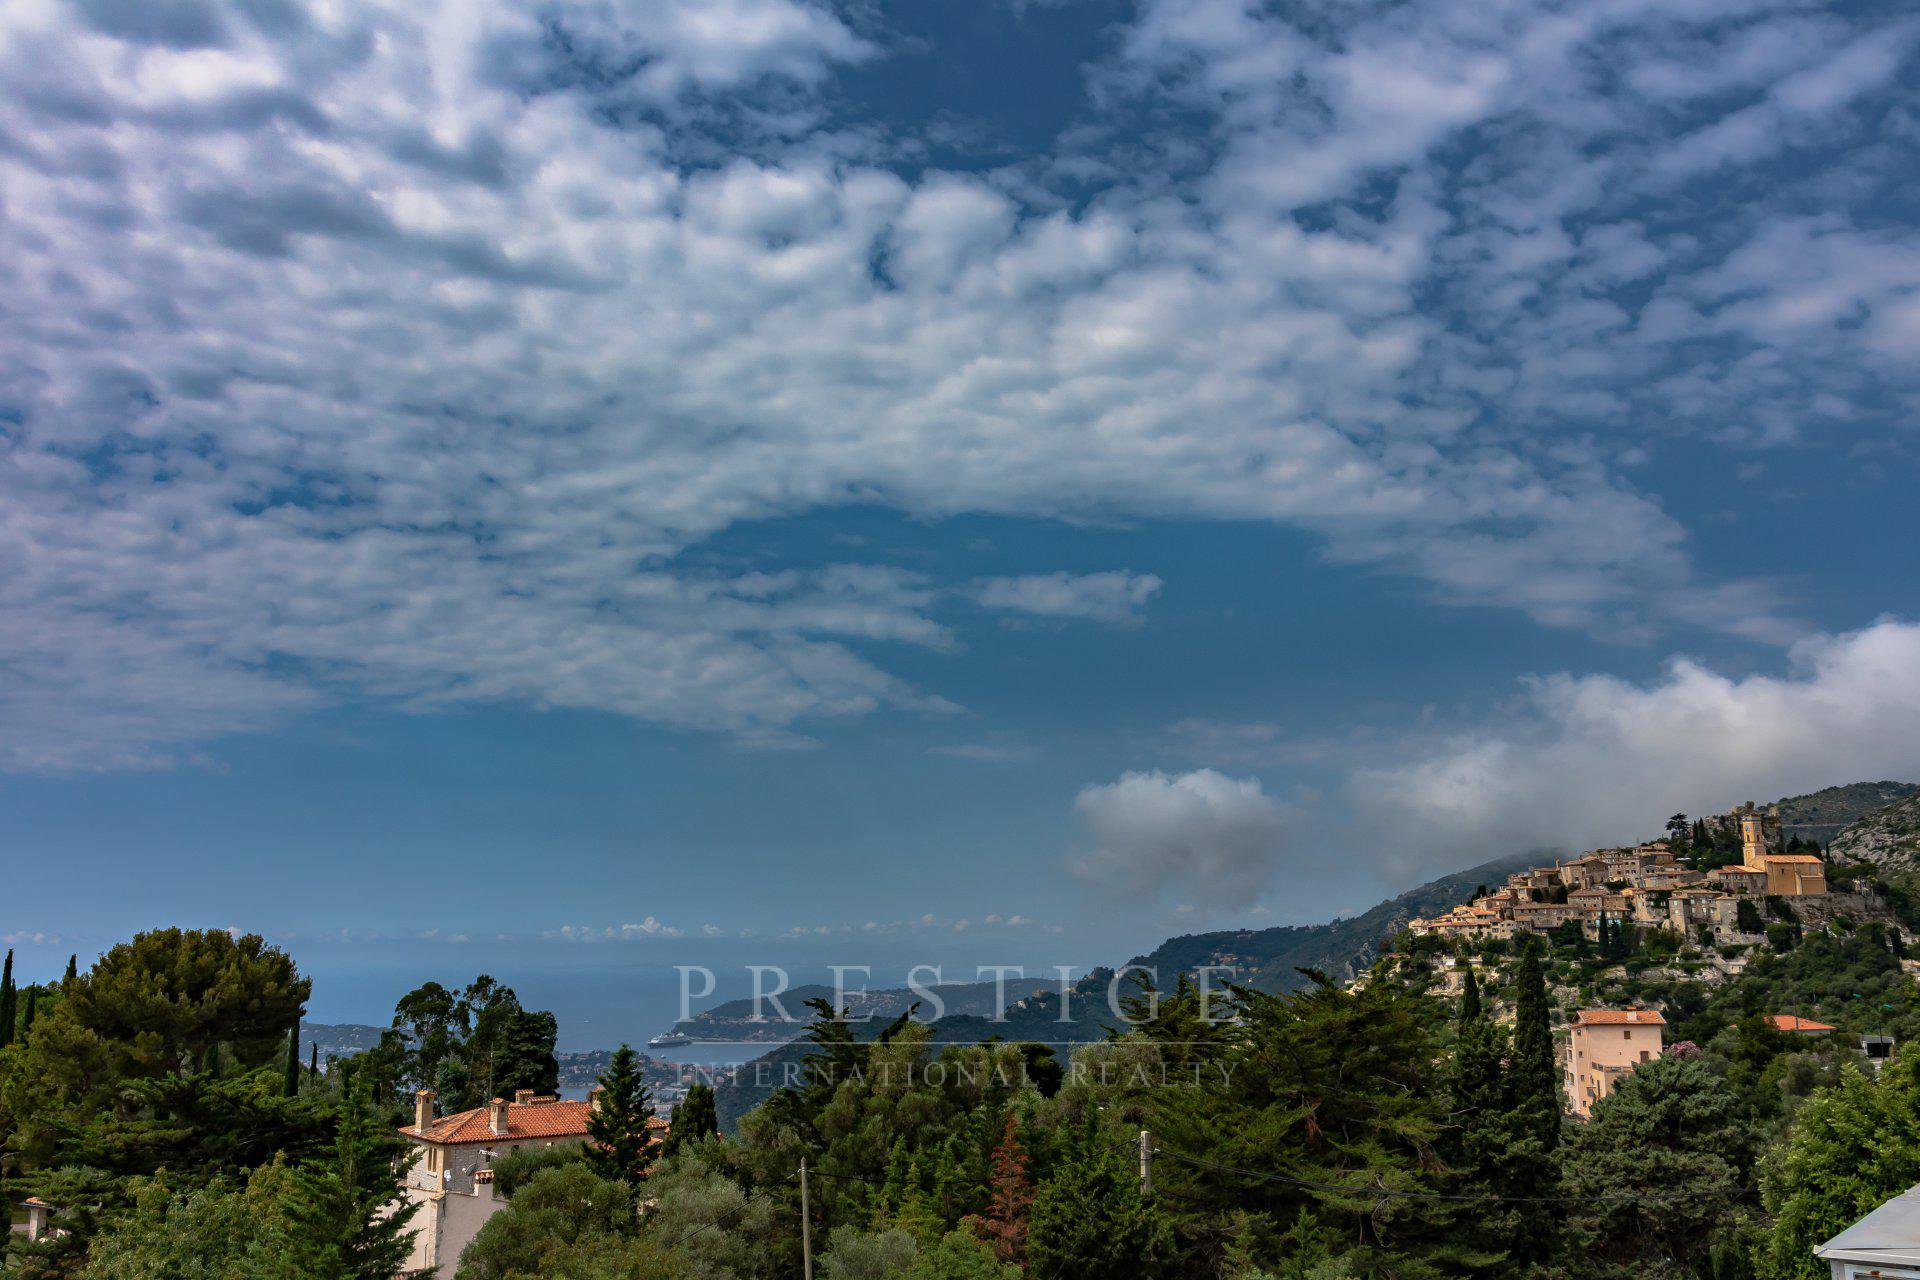 Eze, 1 bedroom flat sea view with roof terrace & parking